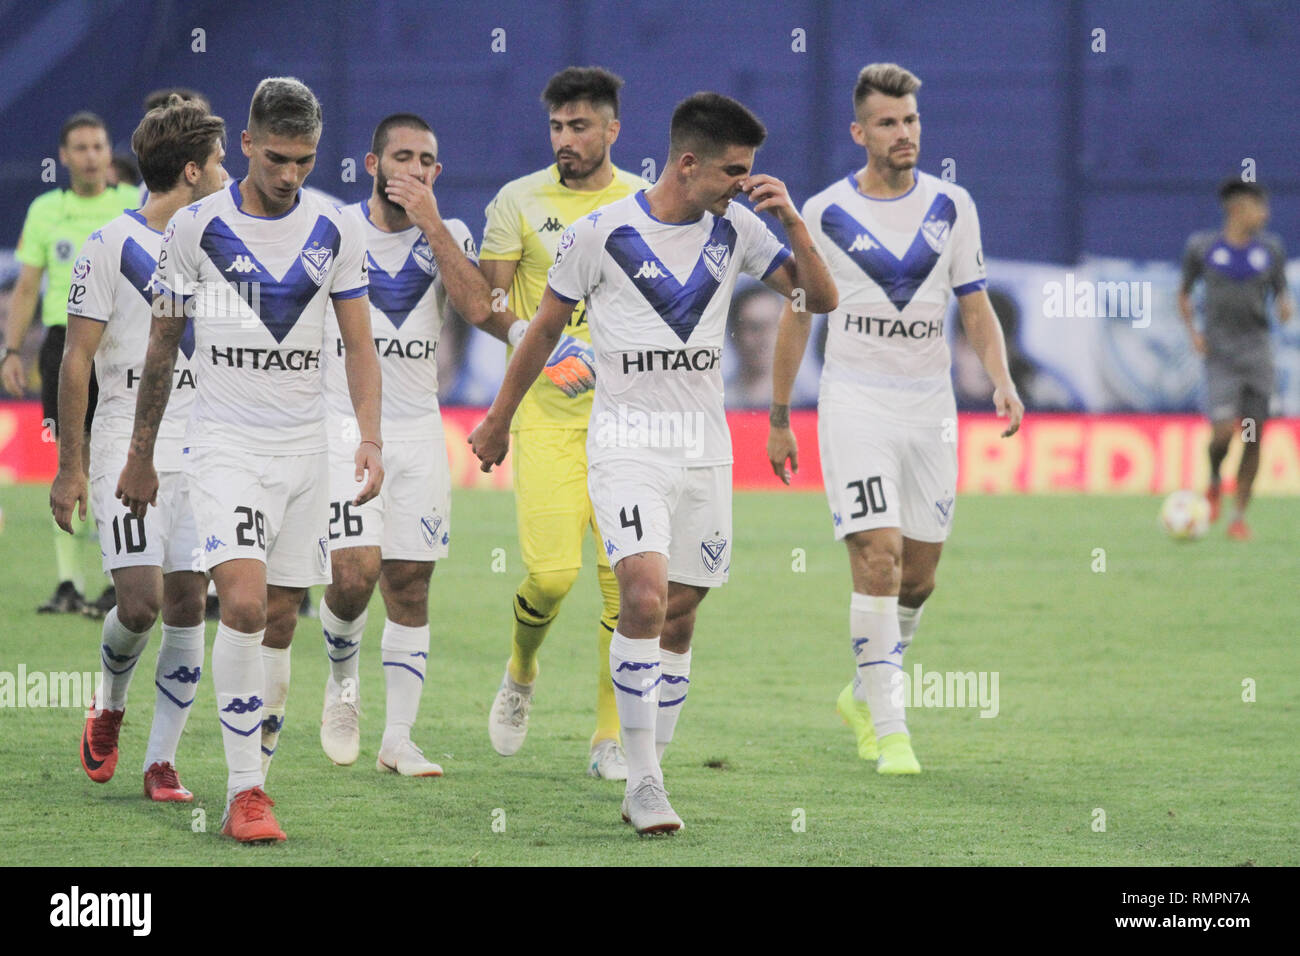 Buenos Aires, Argentina. 15th Feb, 2019. Players of Vélez after the match between Vélez Sarsfield e Colon for Superliga Argentina, this friday on José Amalfitani Stadium on Buenos Aires, Argentina. ( Credit: Néstor J. Beremblum/Alamy Live News - Stock Image